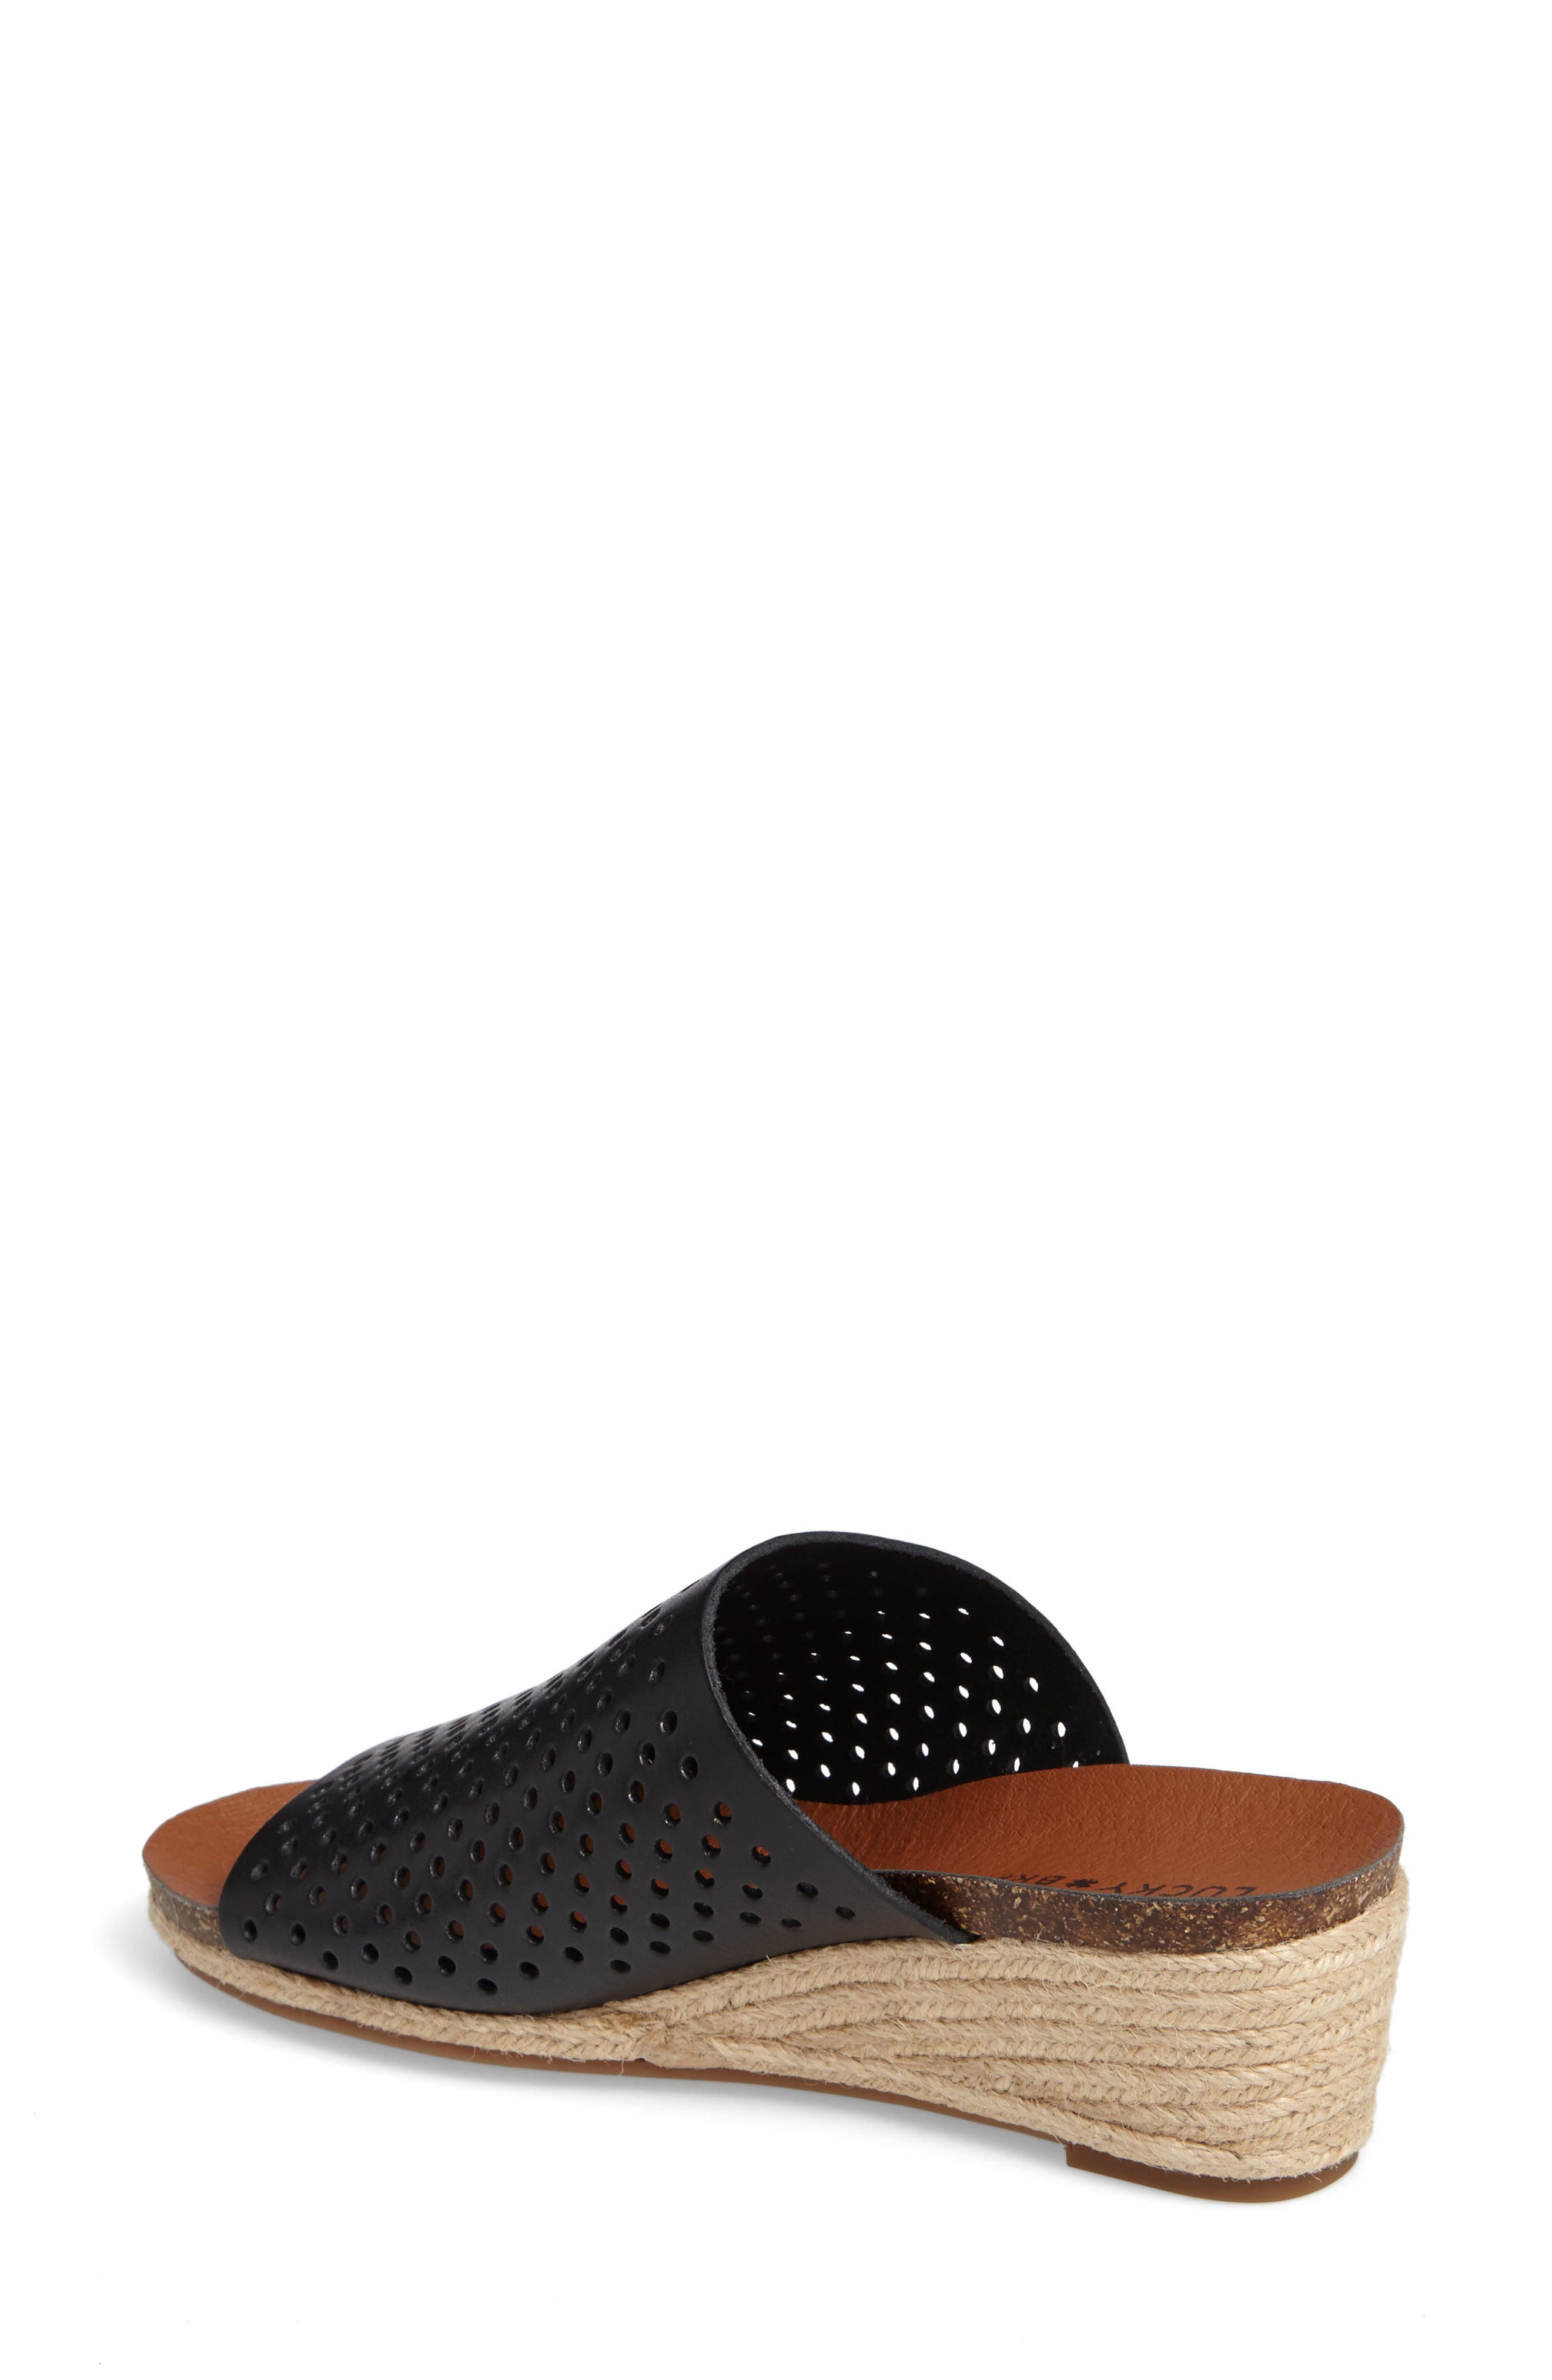 Jemya Perforated Open Toe Mule,                             Alternate thumbnail 2, color,                             001